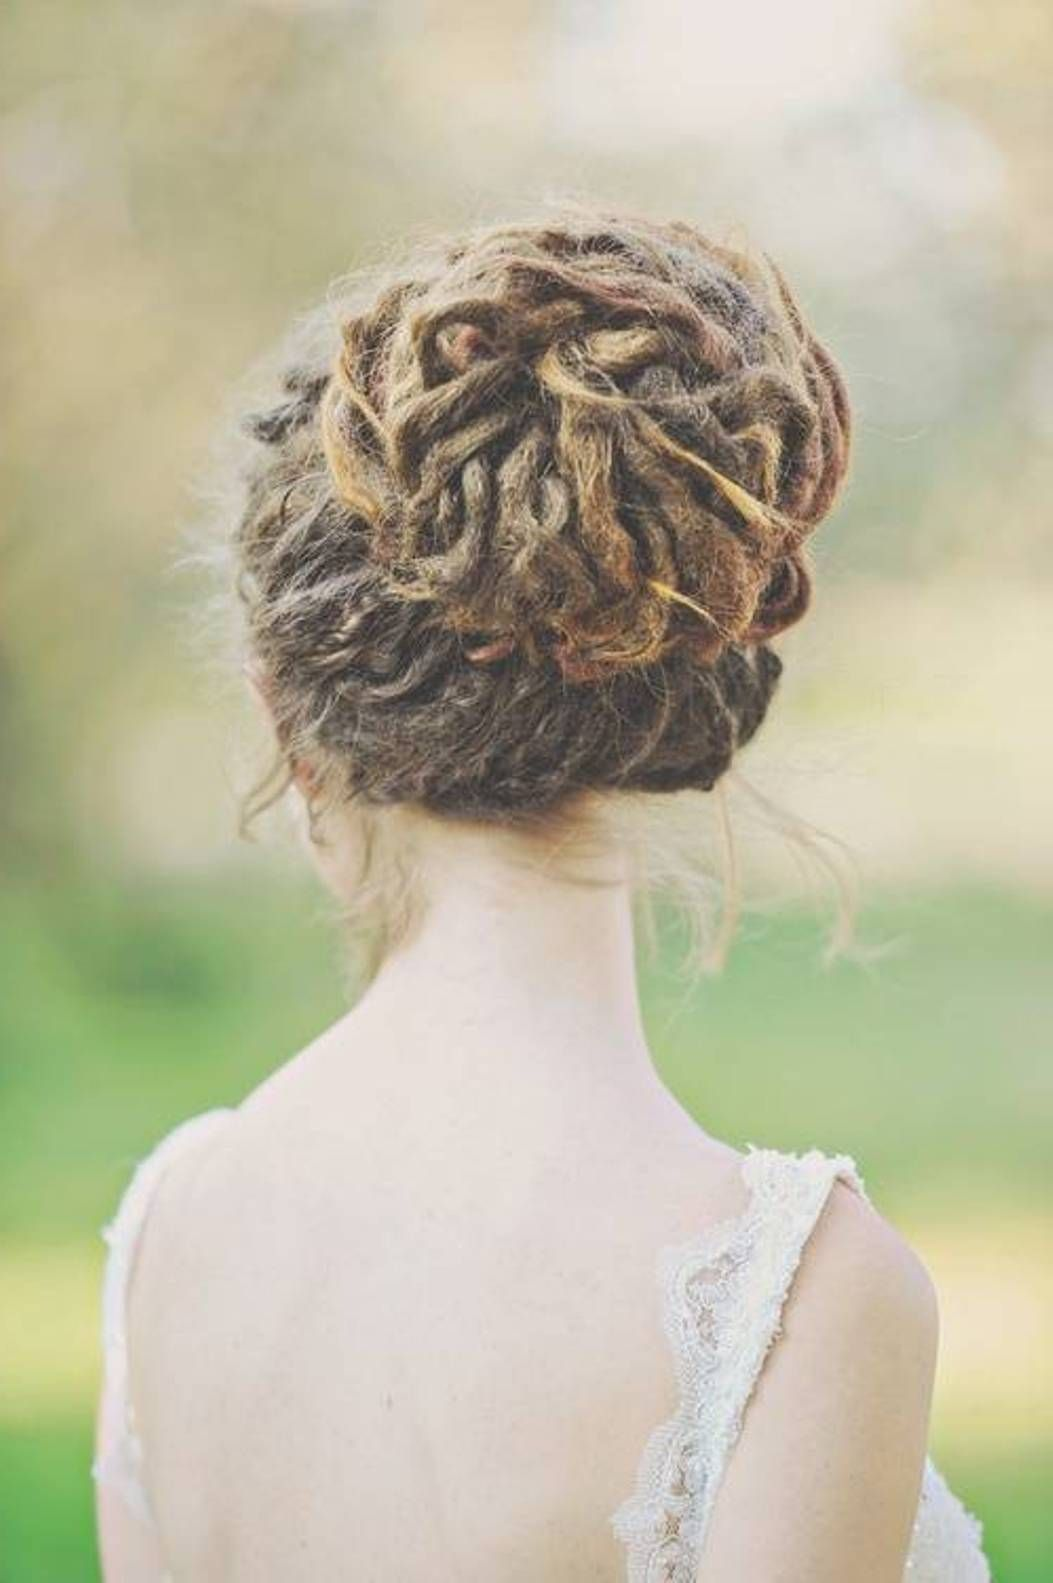 Pretty Bun Dreadlock Hairstyles Im Going To Have Add Some Longer Ones In Just For The Wedding